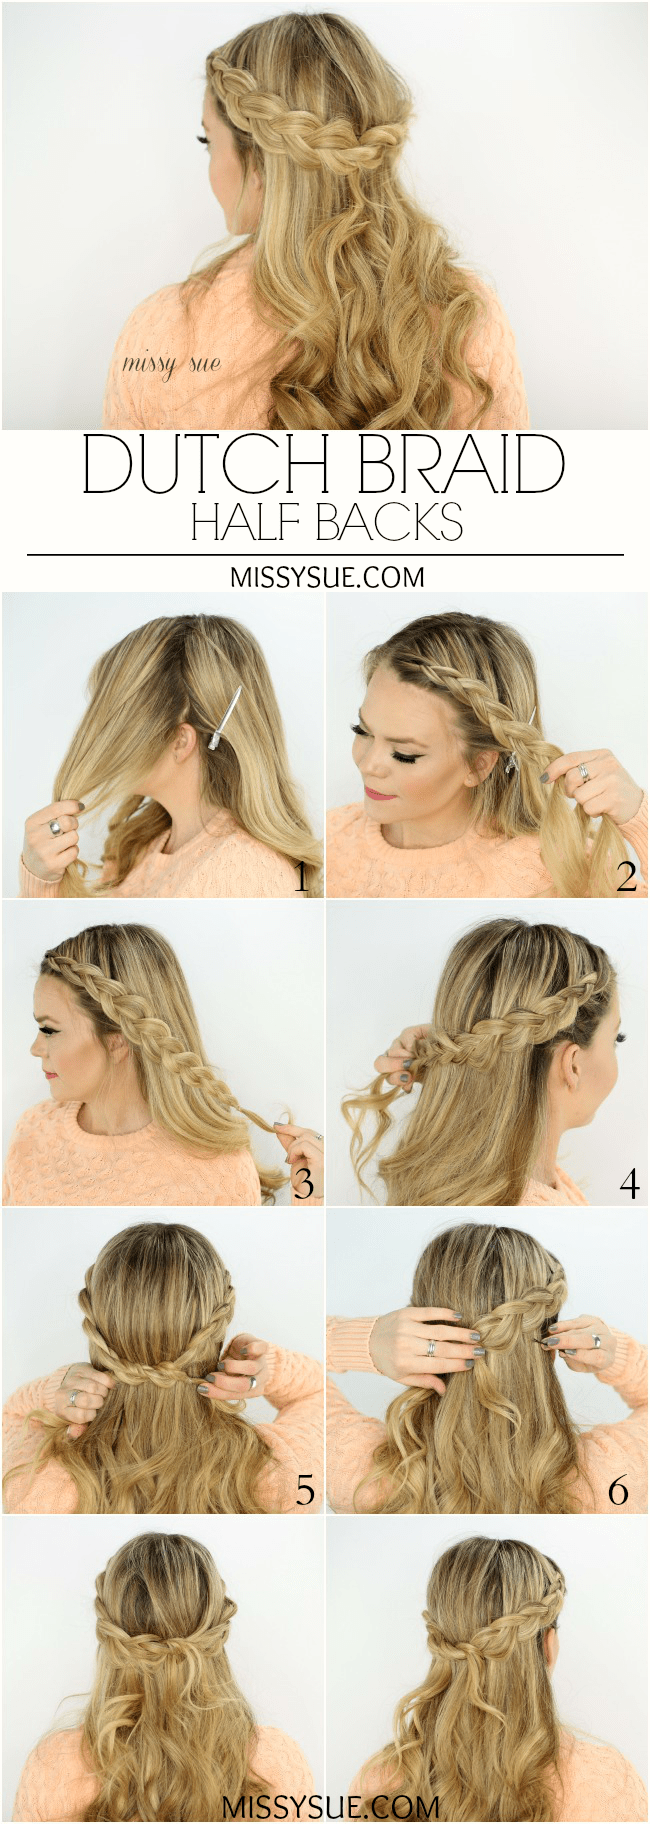 Party hairstyles half up half down step by step